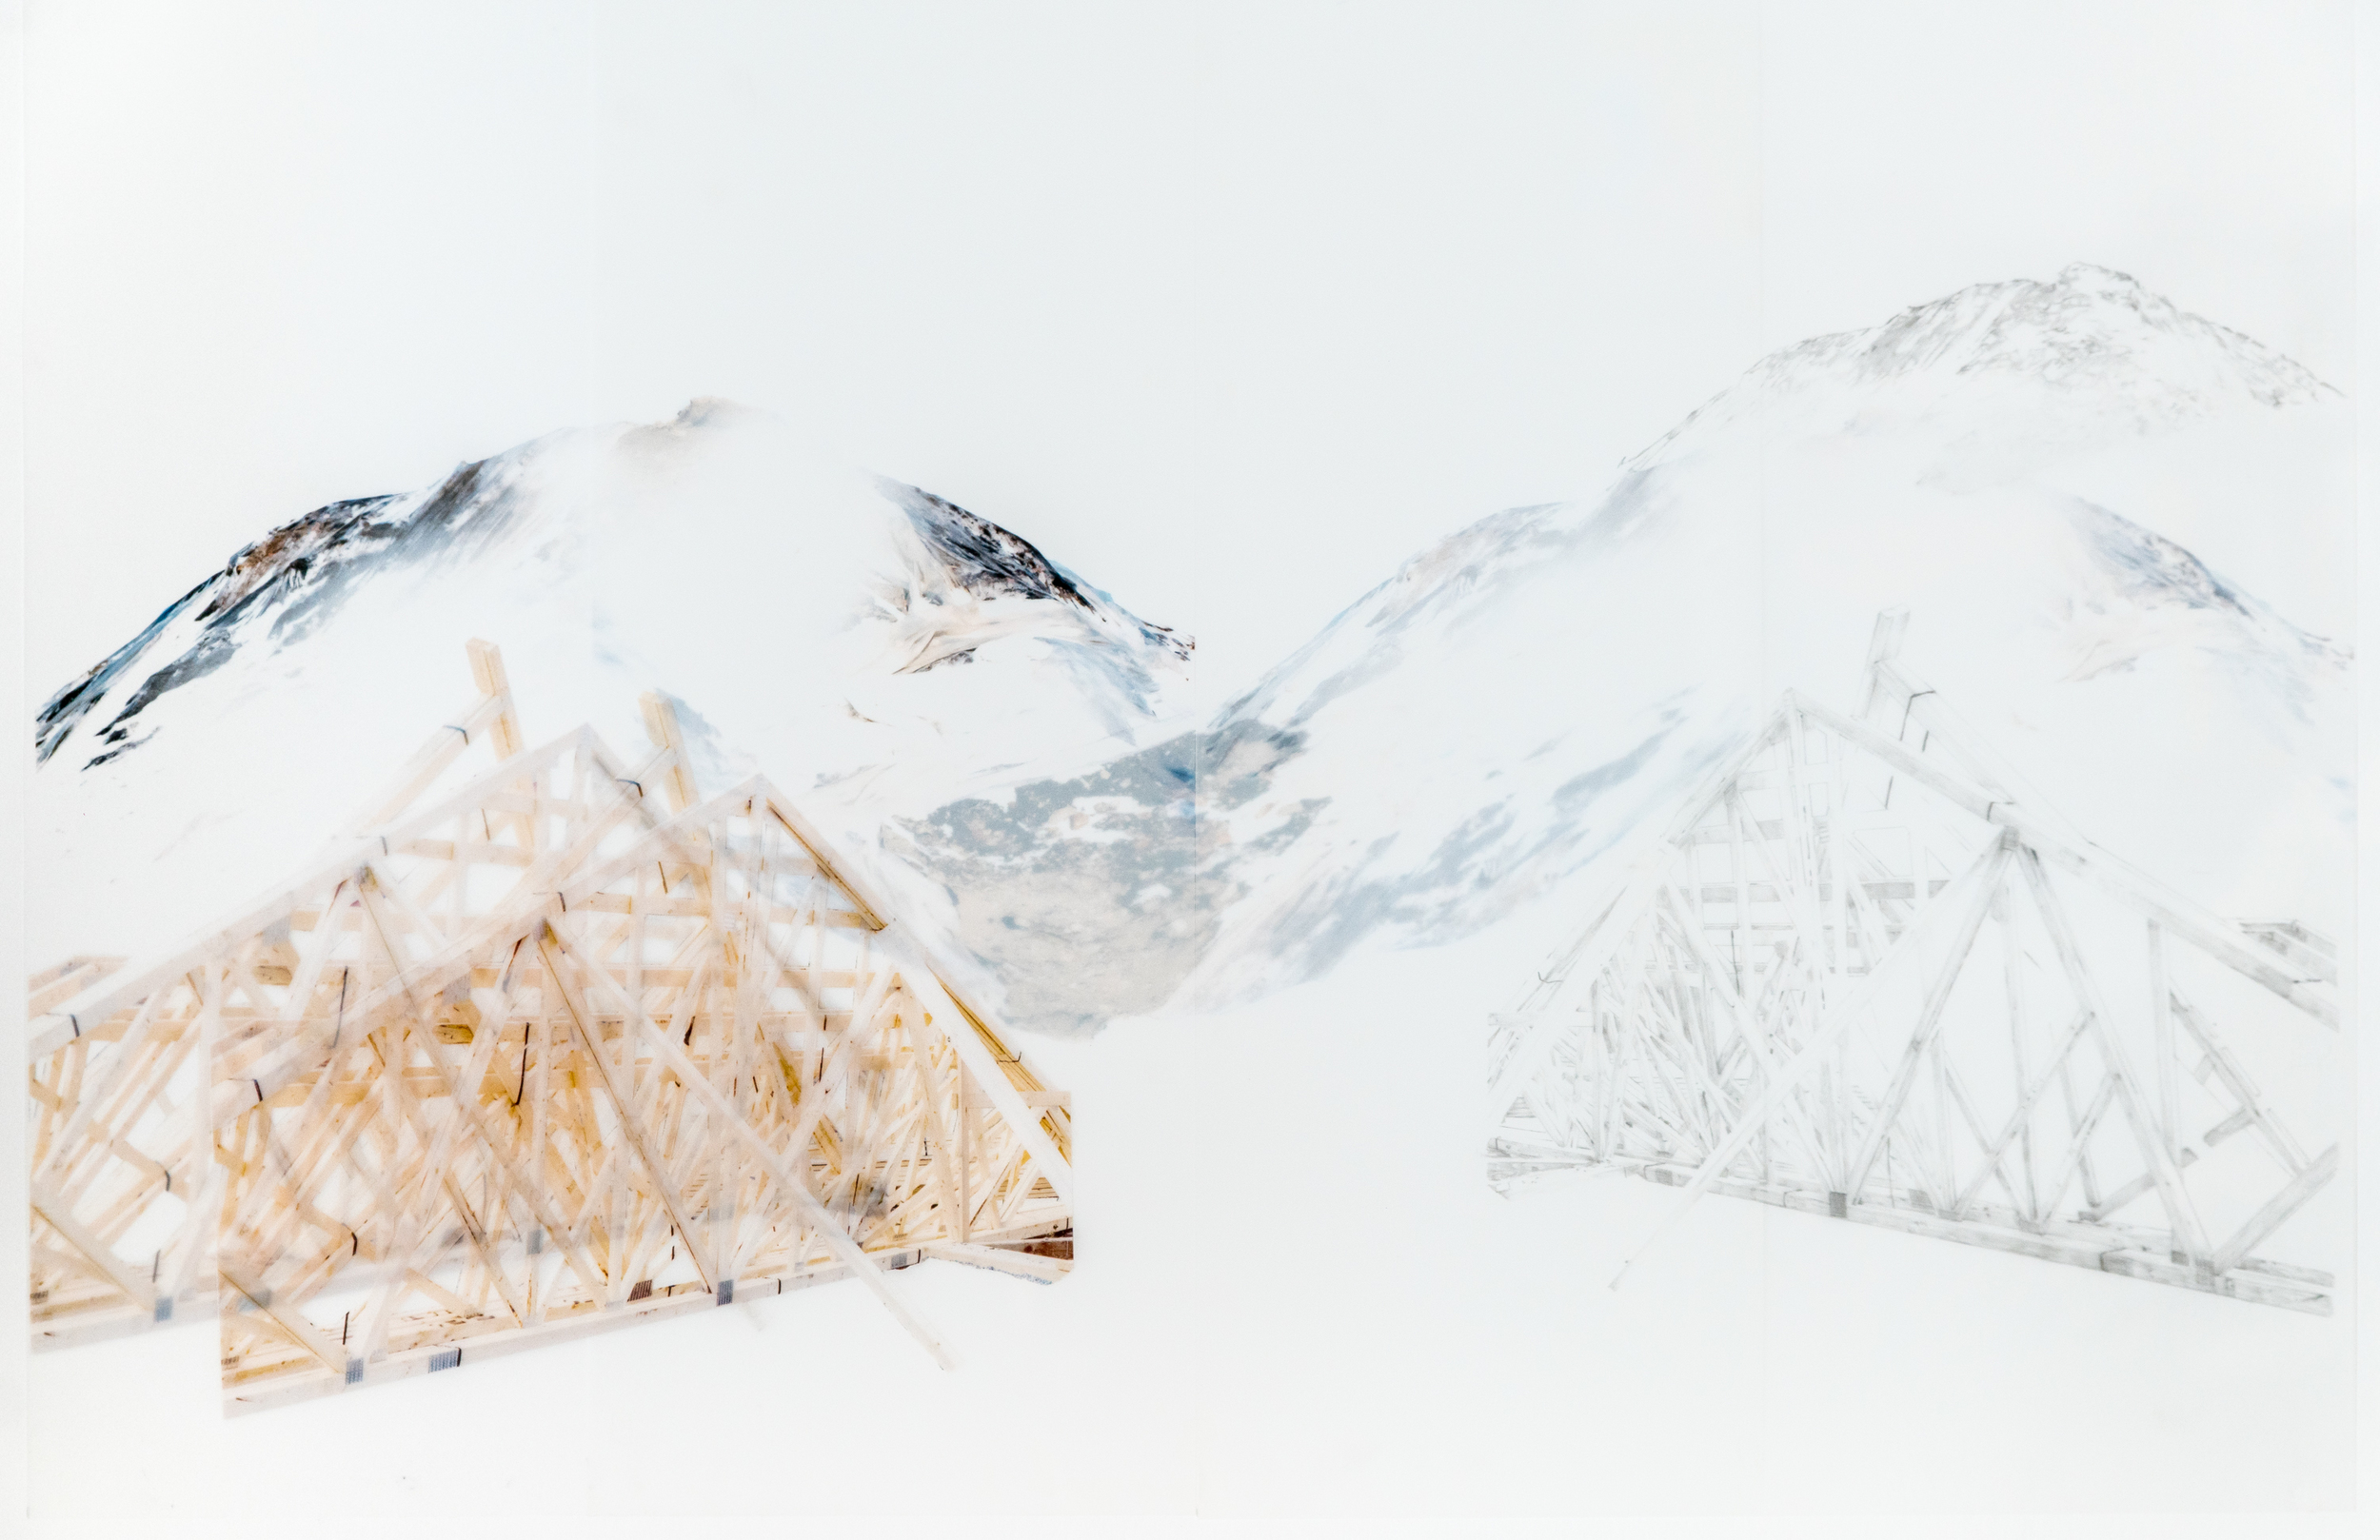 Tapisserie Urbaine/Structure déconstruite ,Digital printing,graphite and collage on 2 sheets of Mylar paper,64 cm x 49 cm,2015 @Cara Déry  Photo by Jean-Michael Seminaro